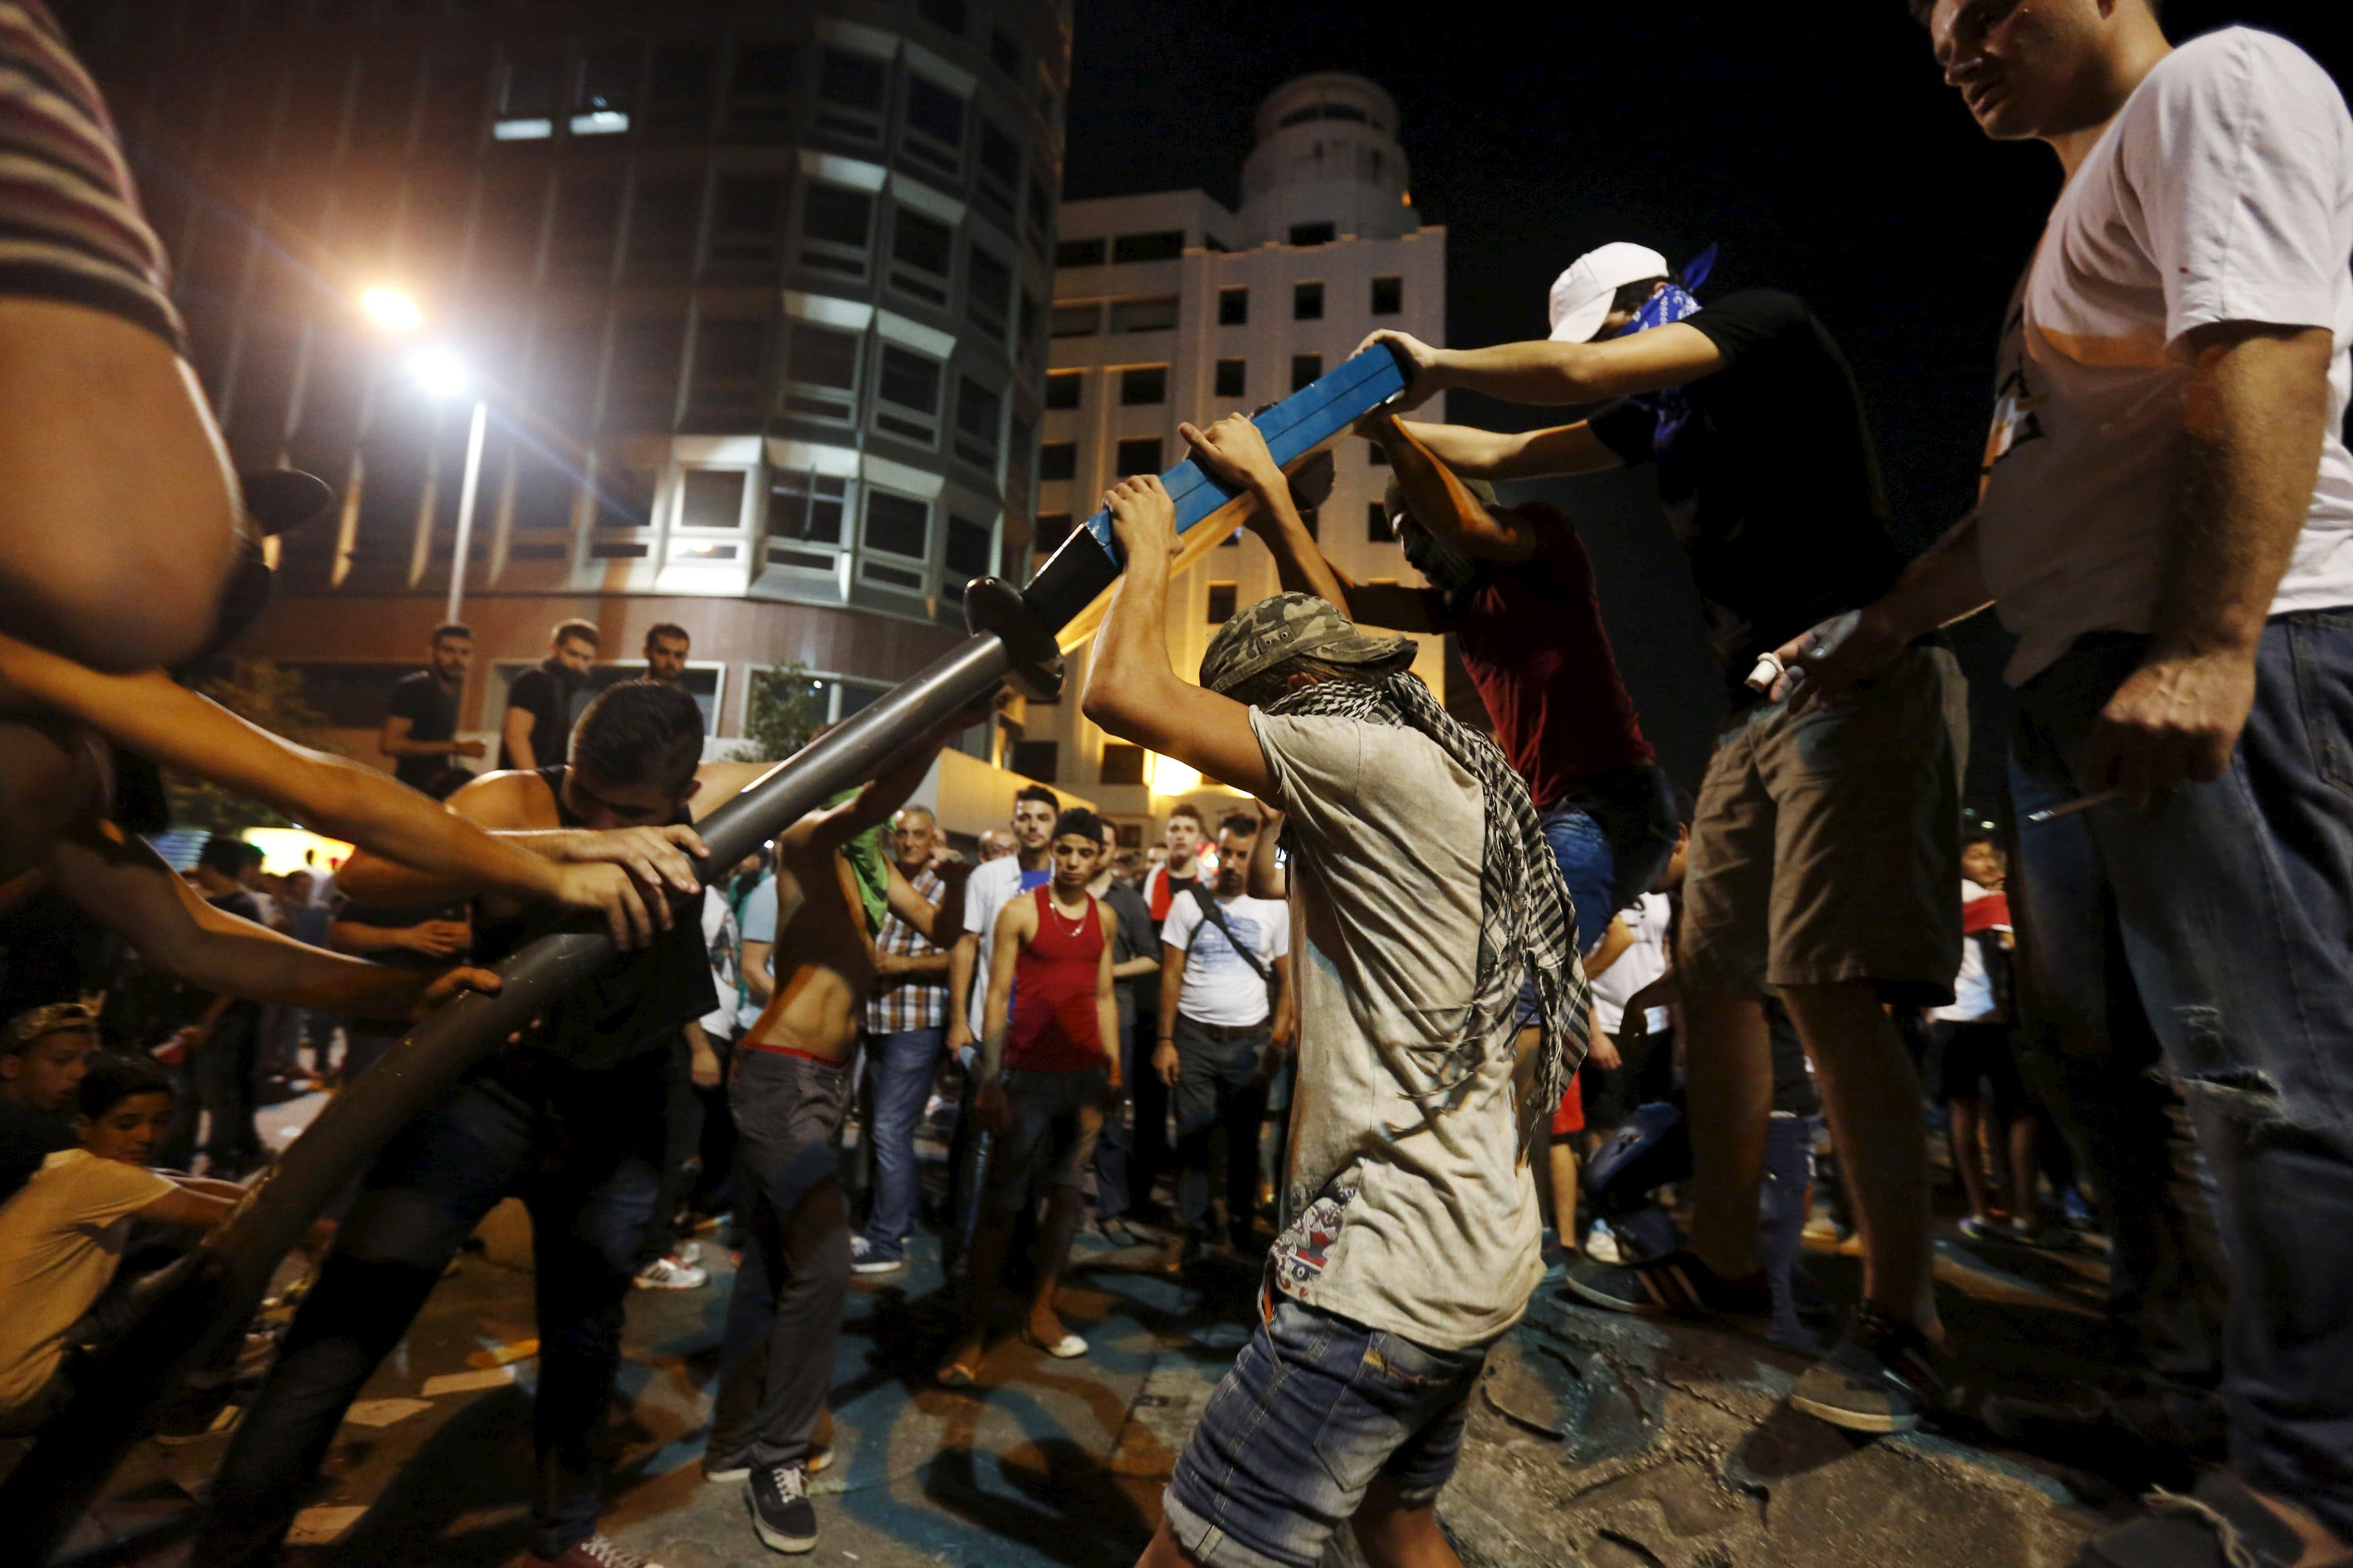 Protesters attempt to break a street sign near the government palace in downtown Beirut, Lebanon August 29, 2015. (Reuters)